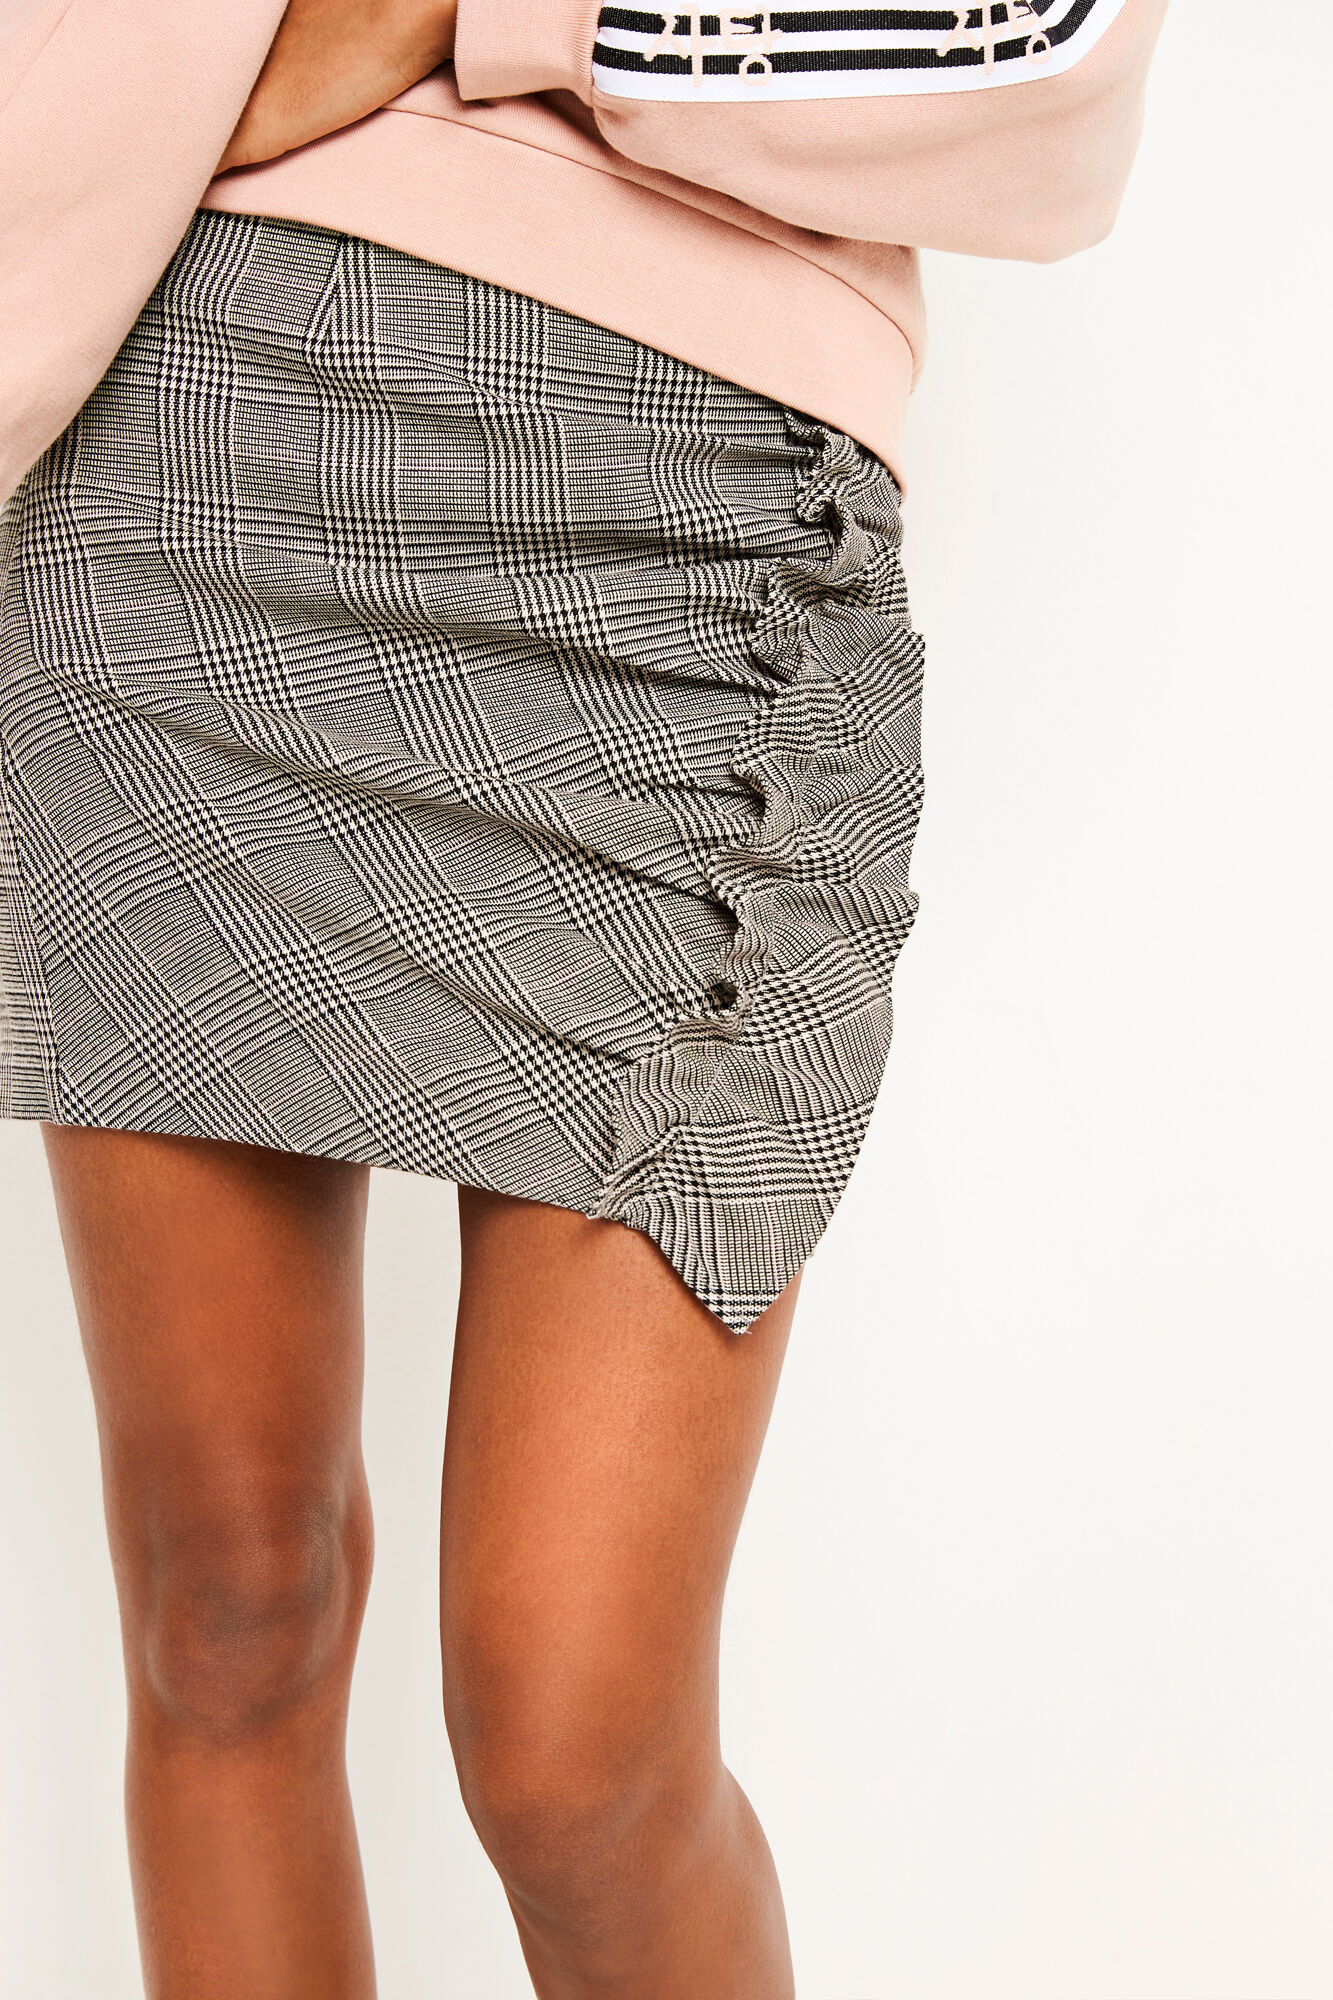 ENTAFFY SKIRT 6506, SATORIAL CHECK